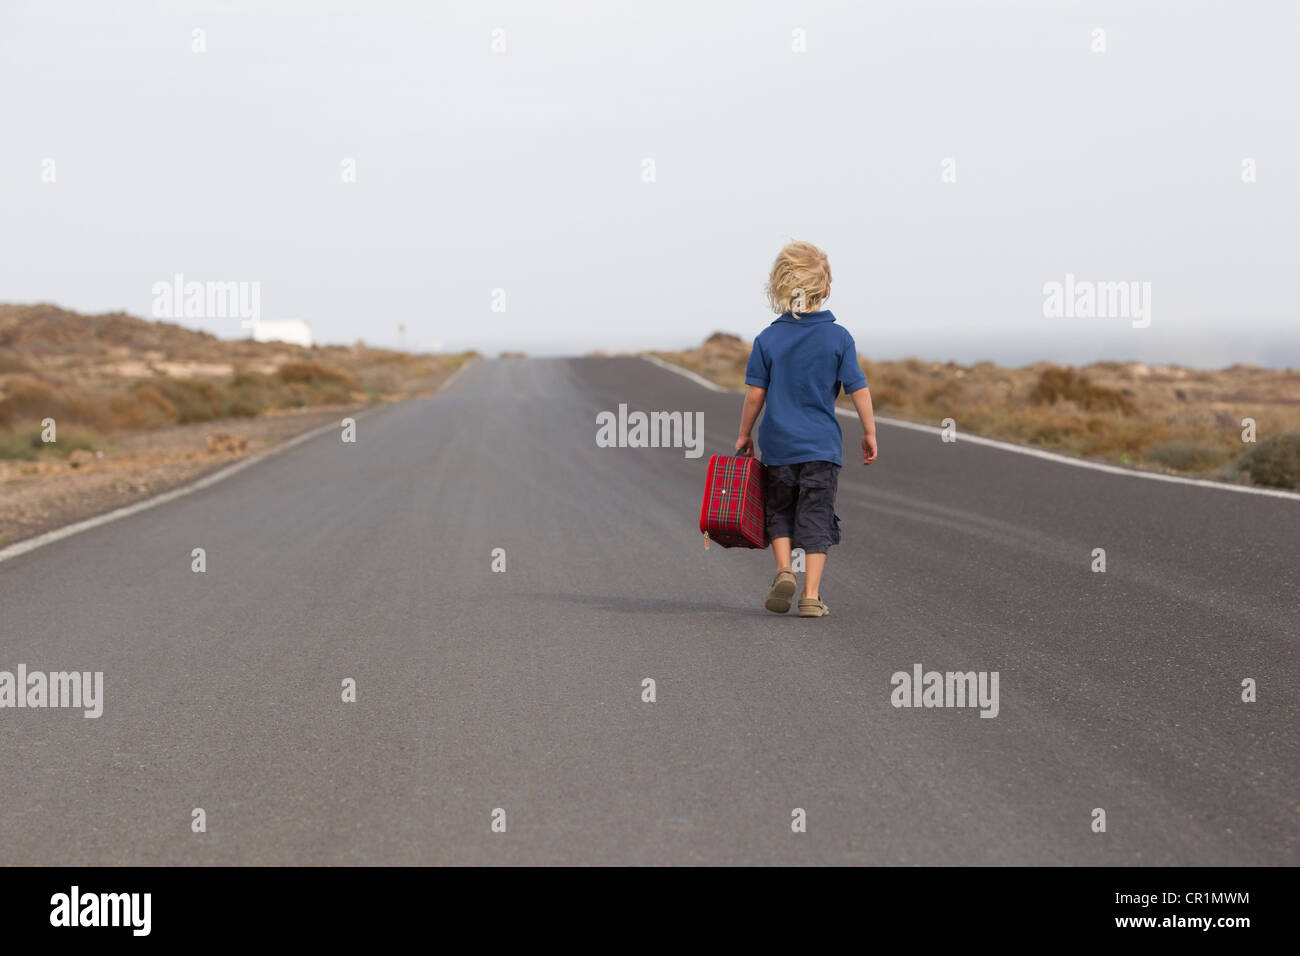 Boy carrying suitcase on rural road - Stock Image